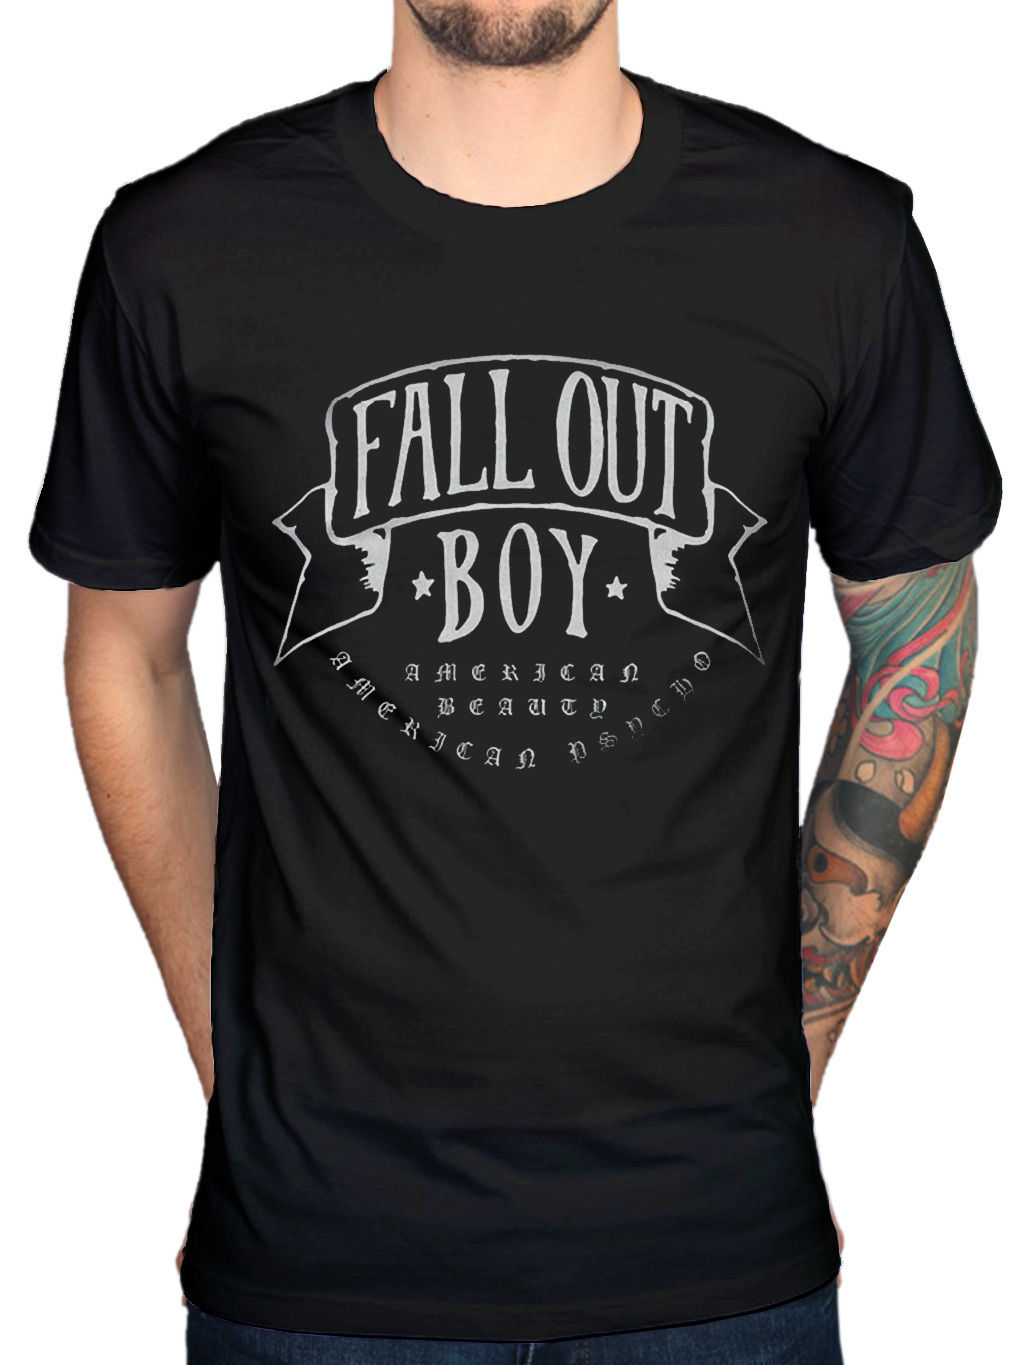 Fall Out Boy American Beauty T-Shirt Rock Band Centuries Merchandise